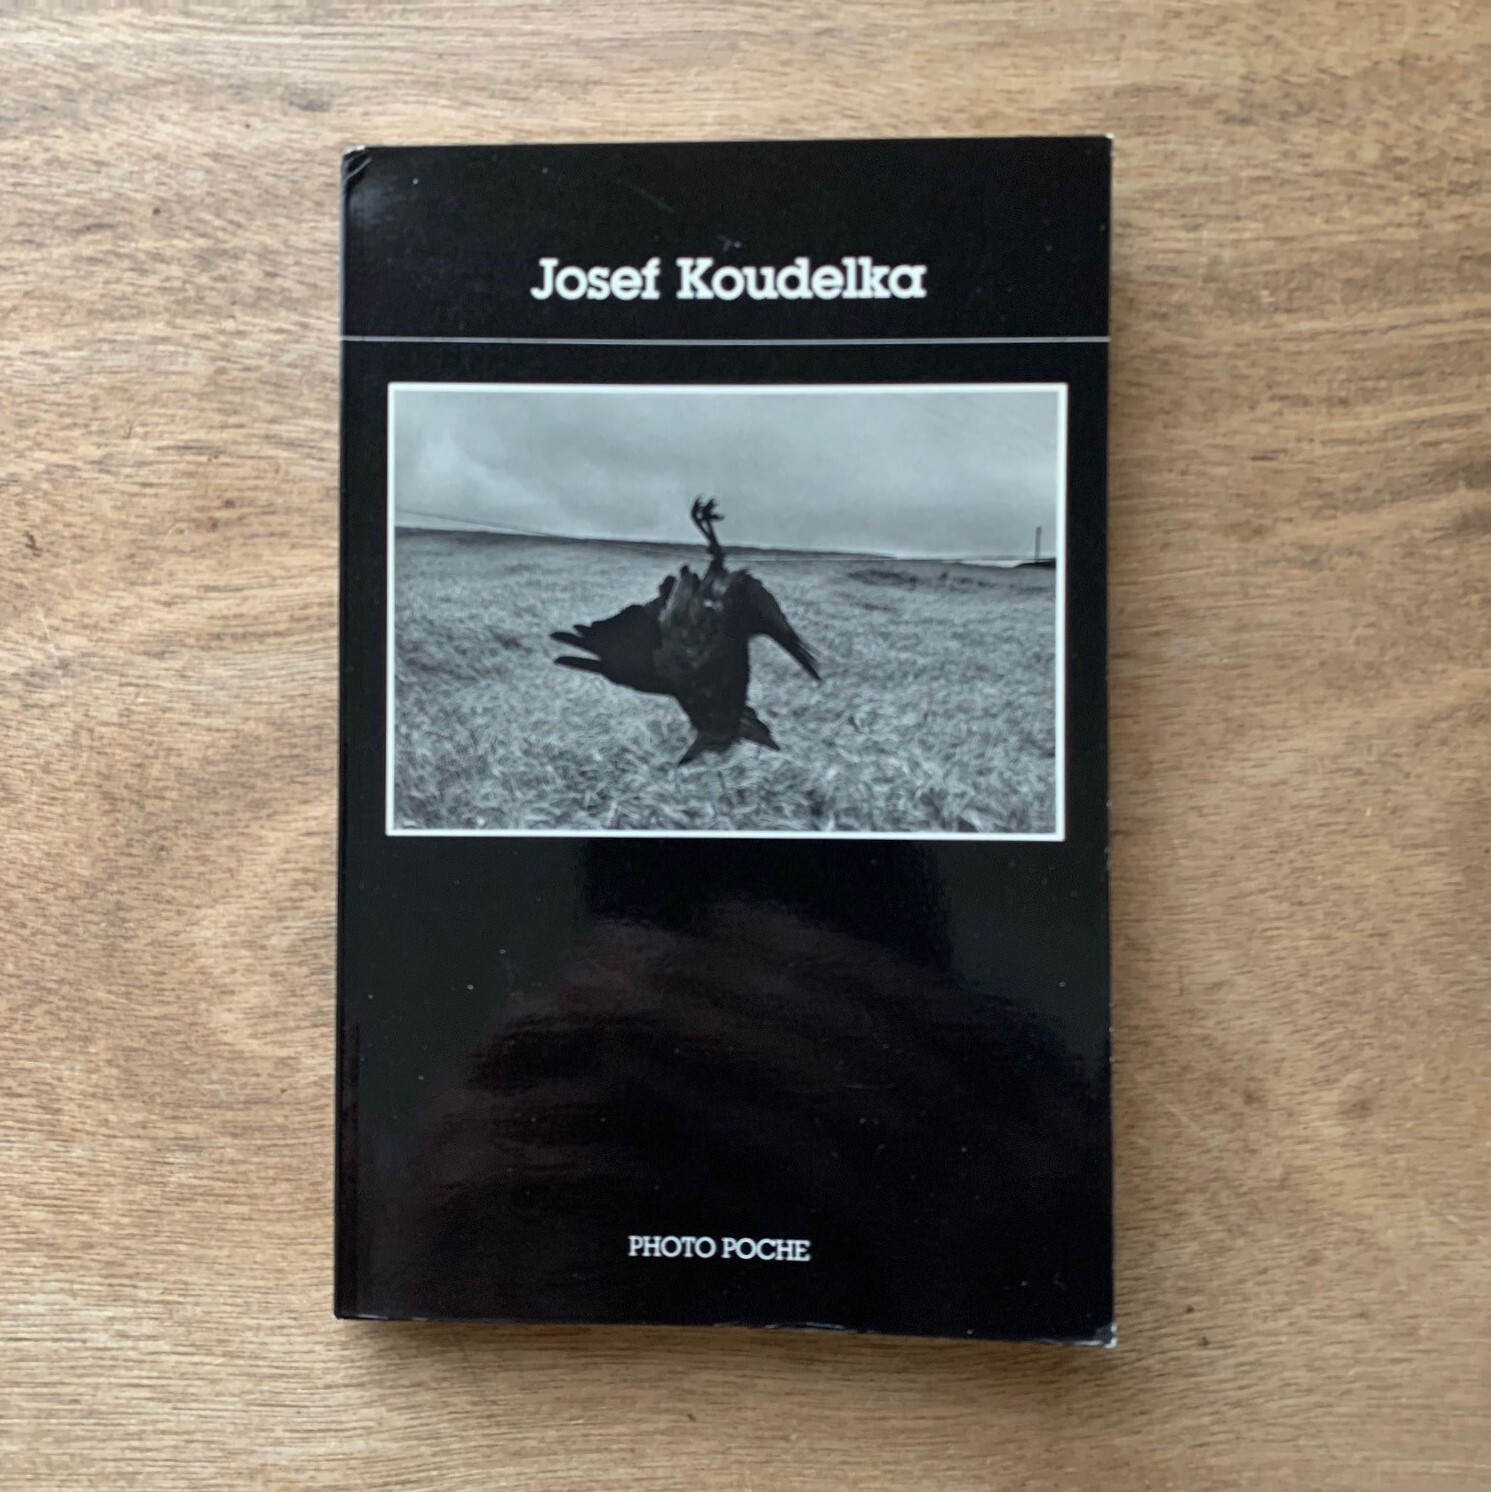 Josef Koudelka  / Photo Poche 15 / ジョセフ・クーデルカ